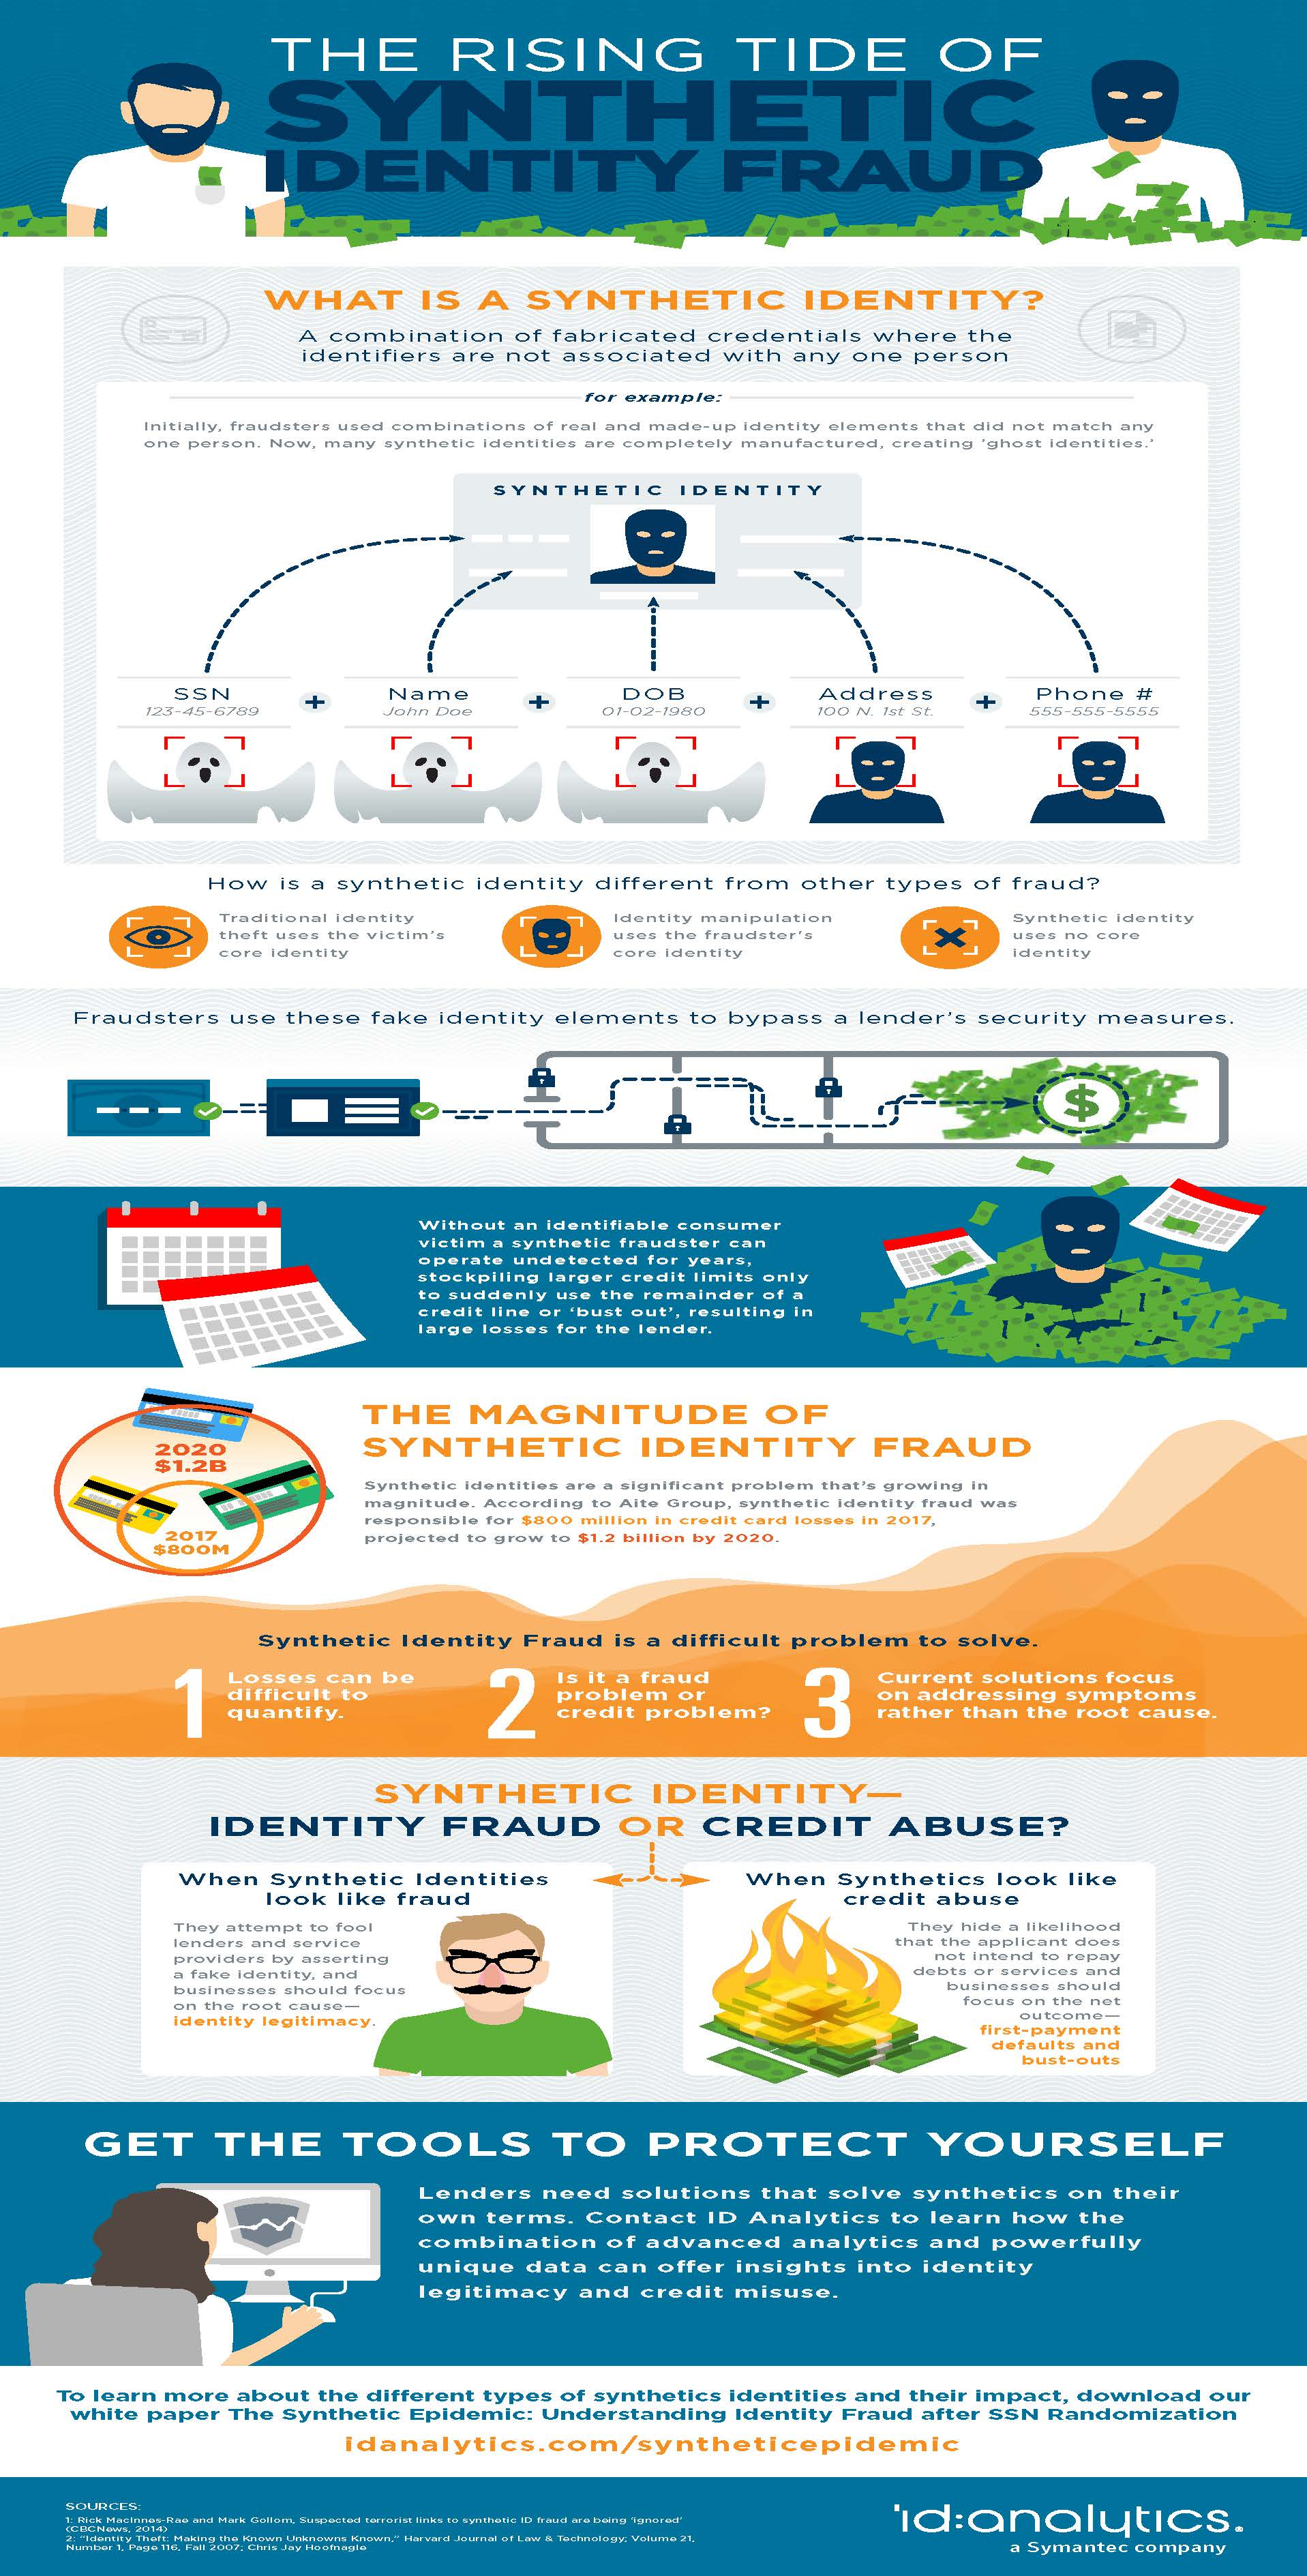 Synthetic Identity Fraud